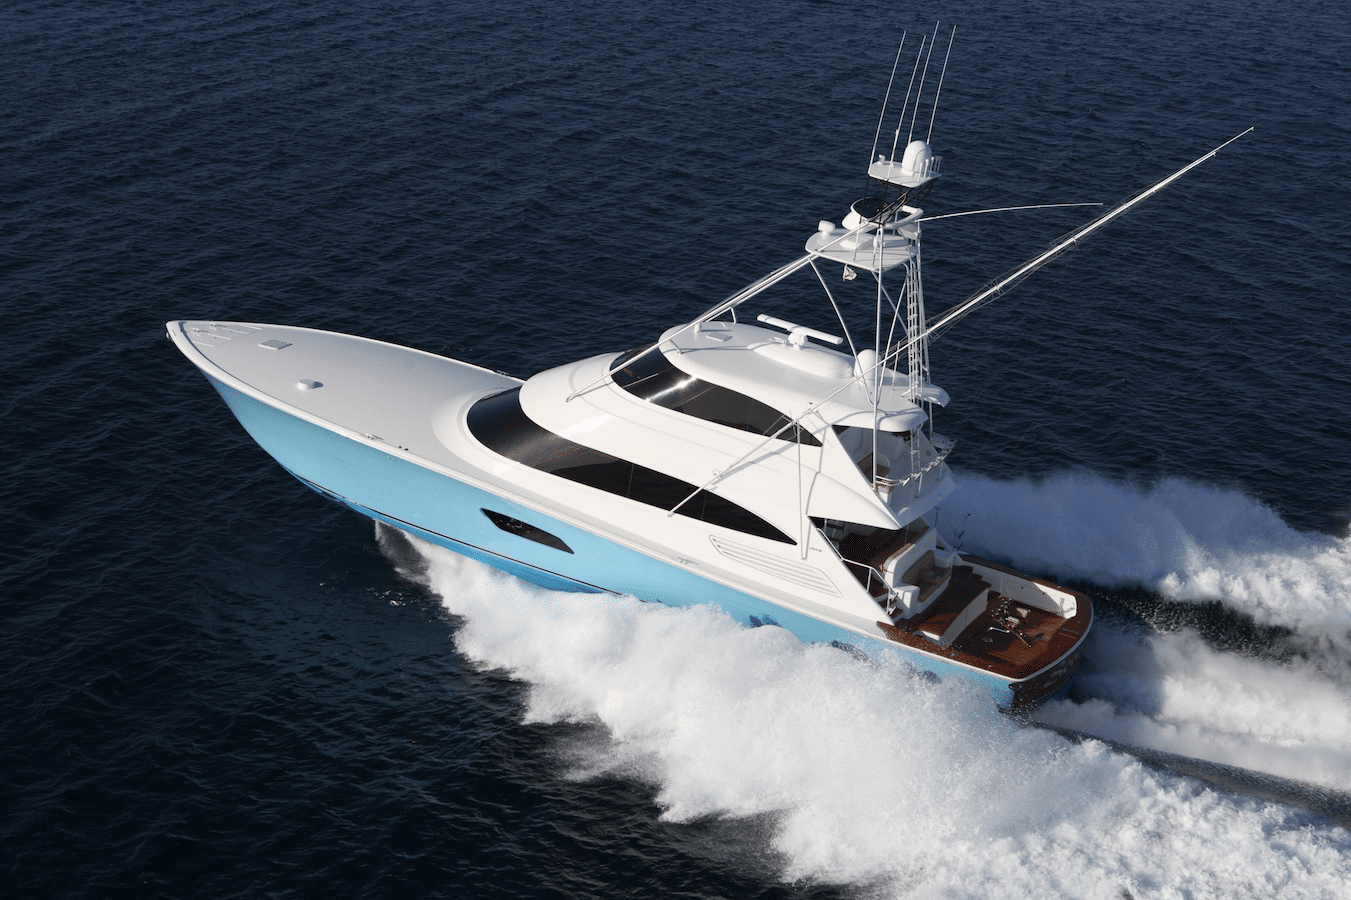 2019 Viking Yachts Sea Trial Event